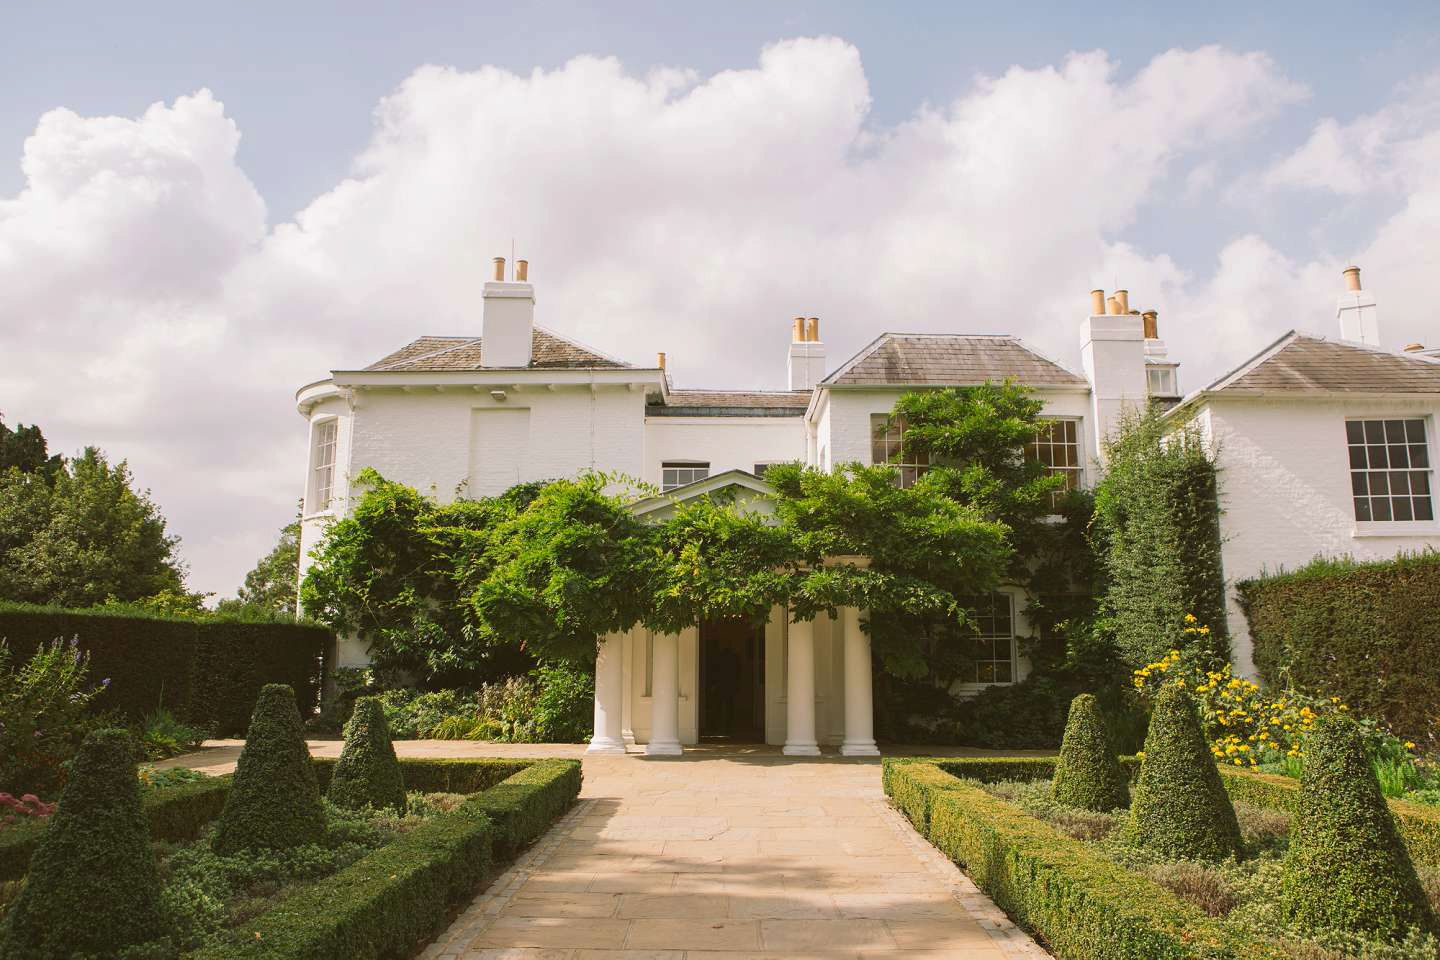 Pembroke Lodge A Gorgeous Wedding Venue In Richmond Surrey On The Outskirts Of London S